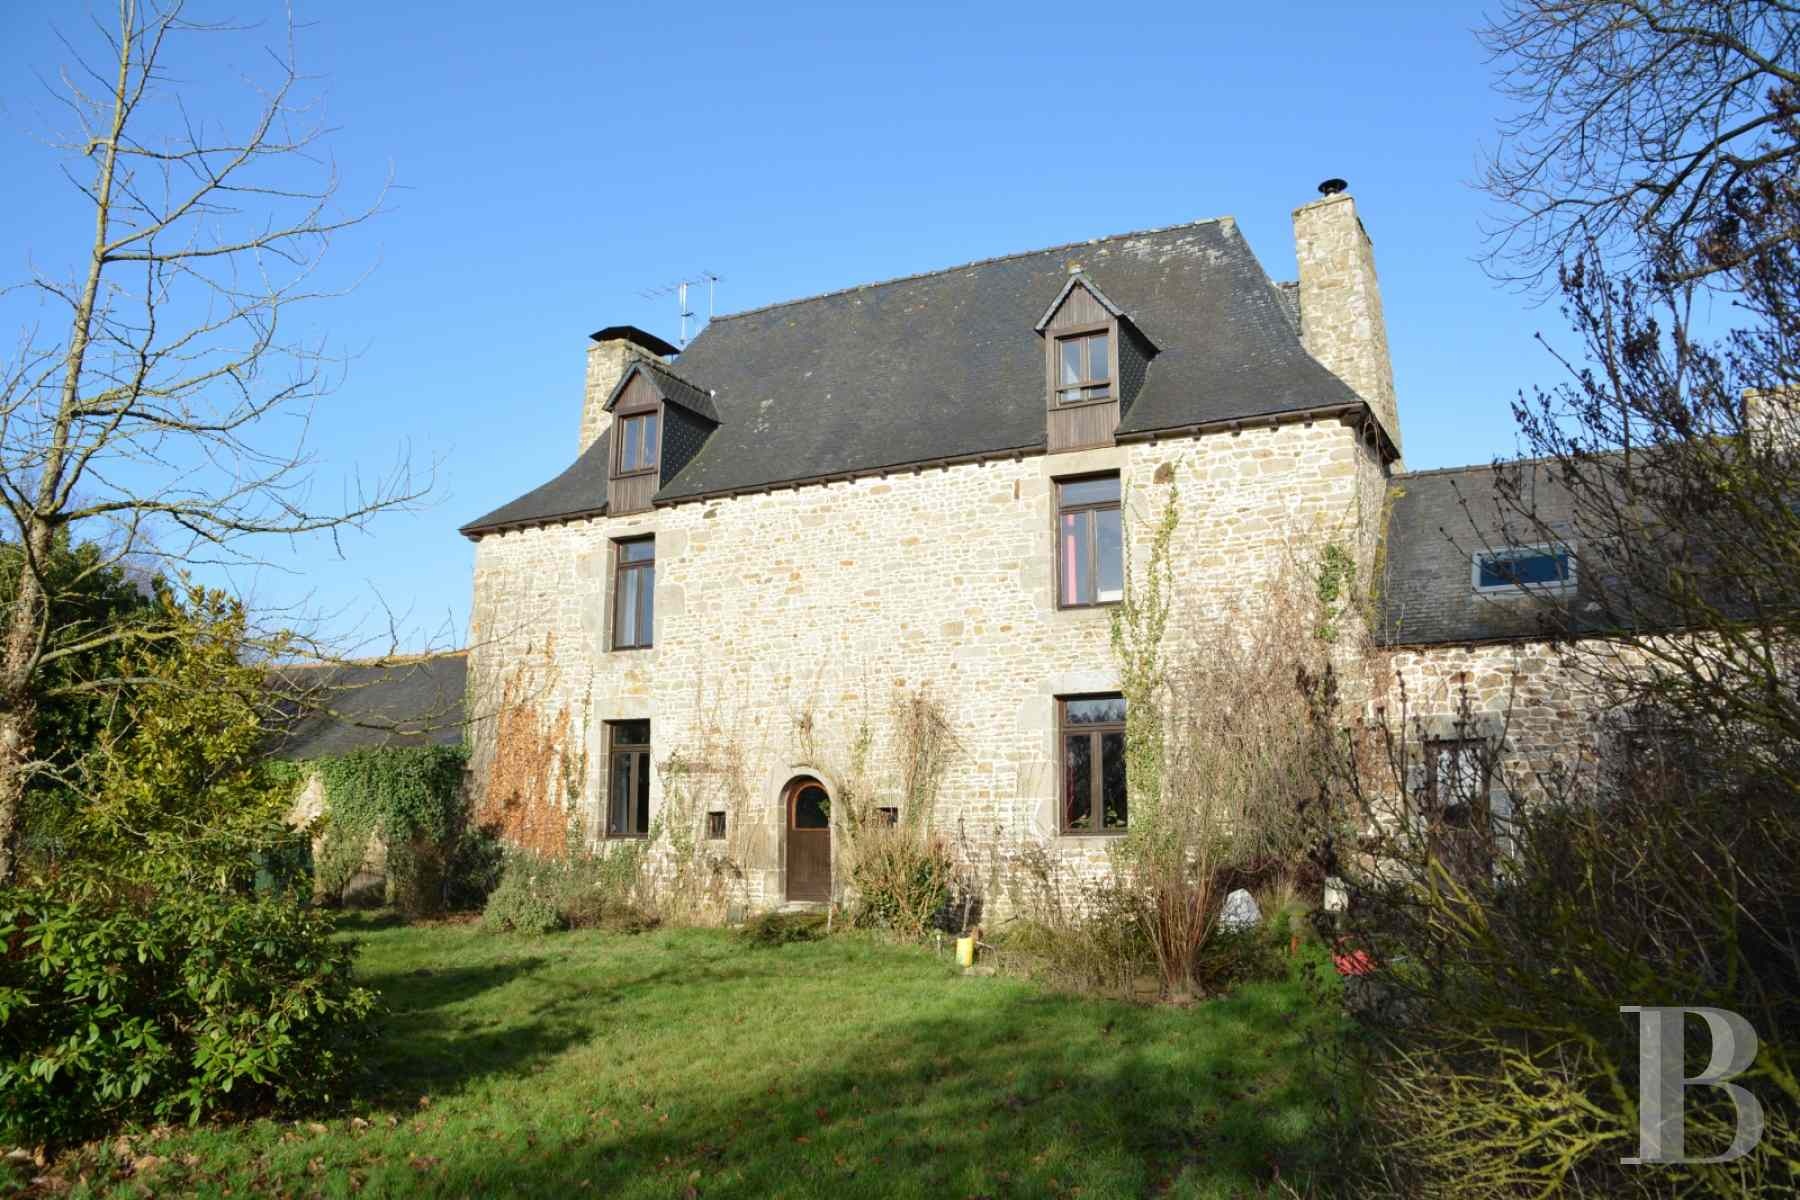 France mansions for sale brittany garden guingamp - 1 zoom